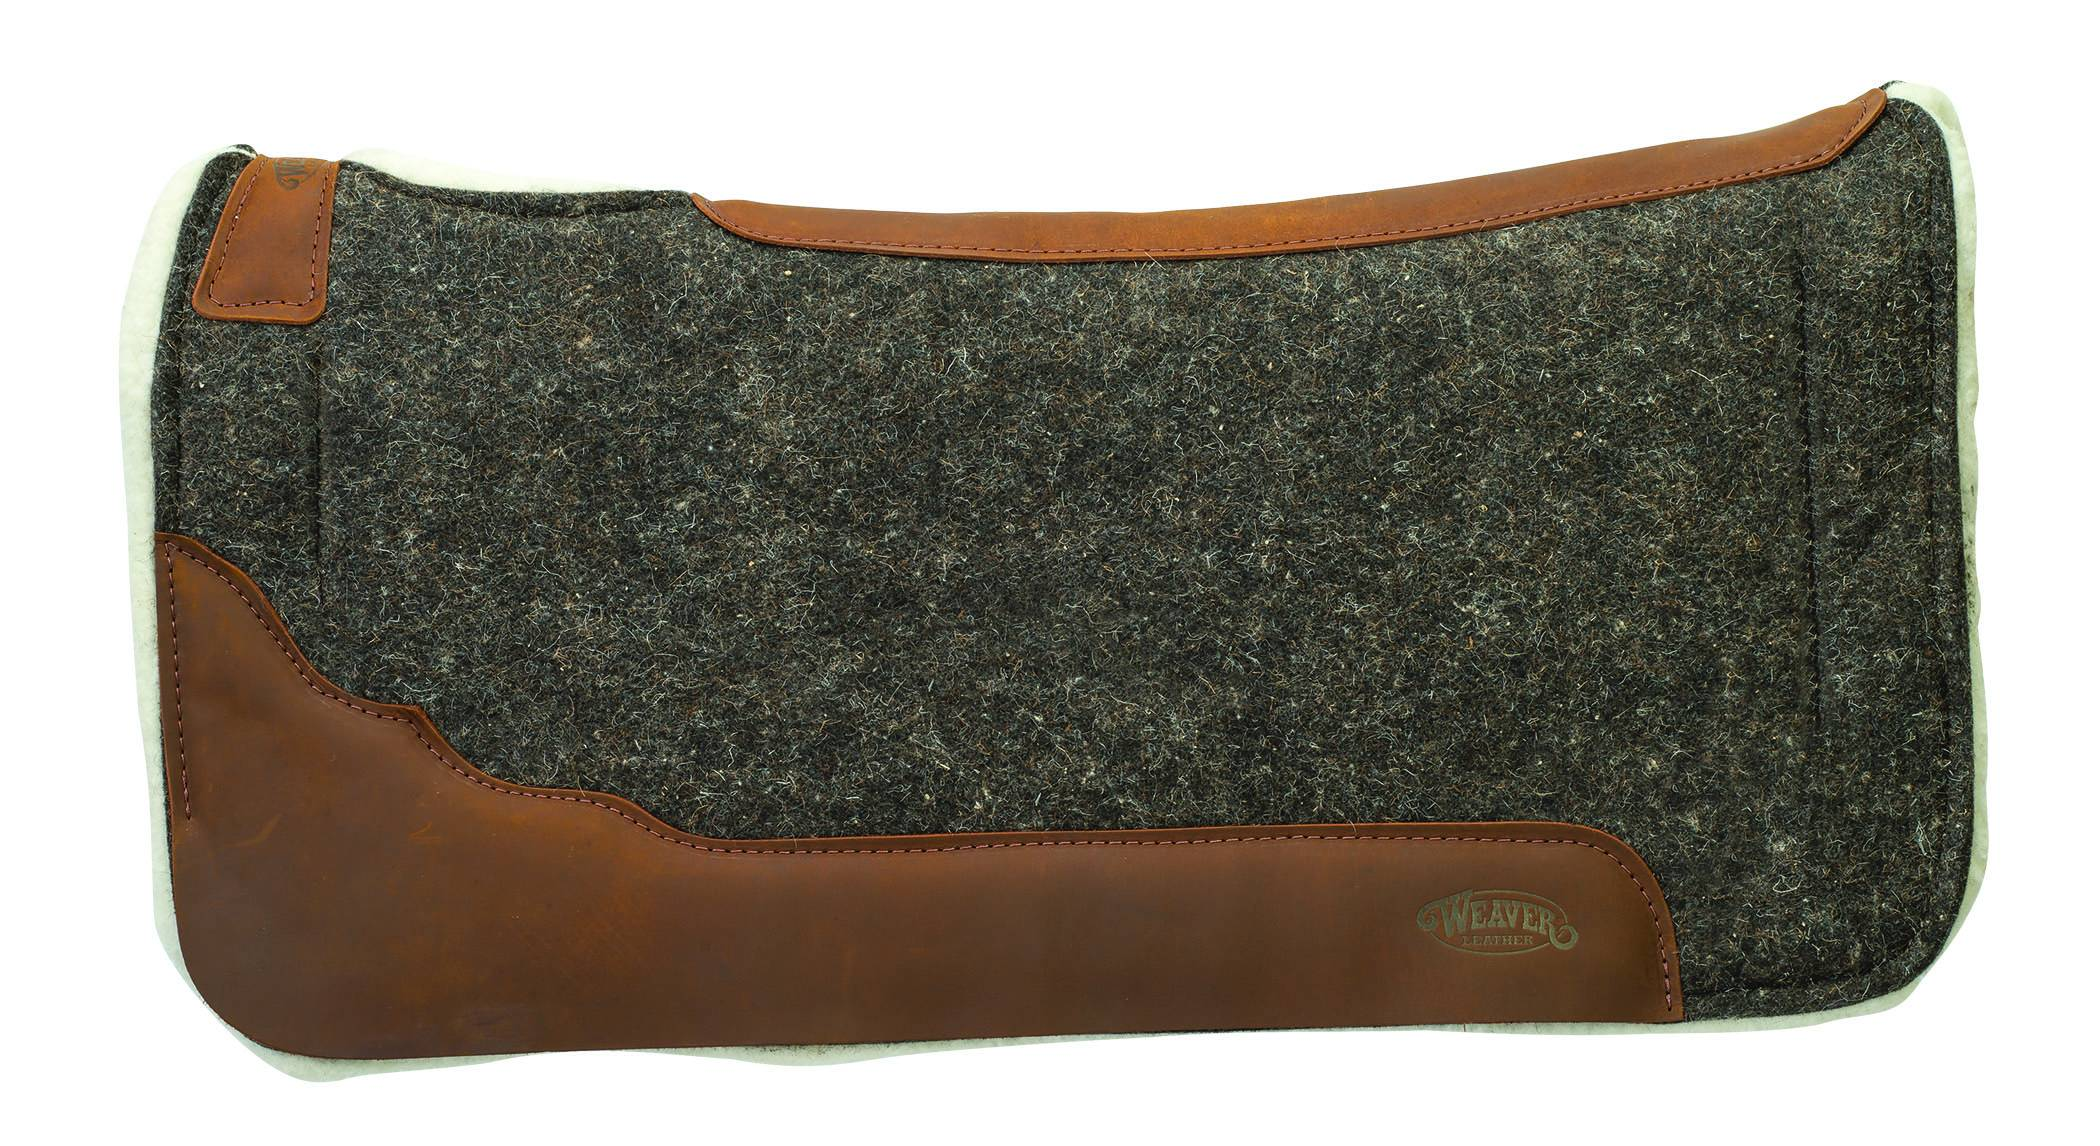 Weaver Impact-Absorbing EVA Sport Foam 100% Wool And Merino Wool Fleece Saddle Pad